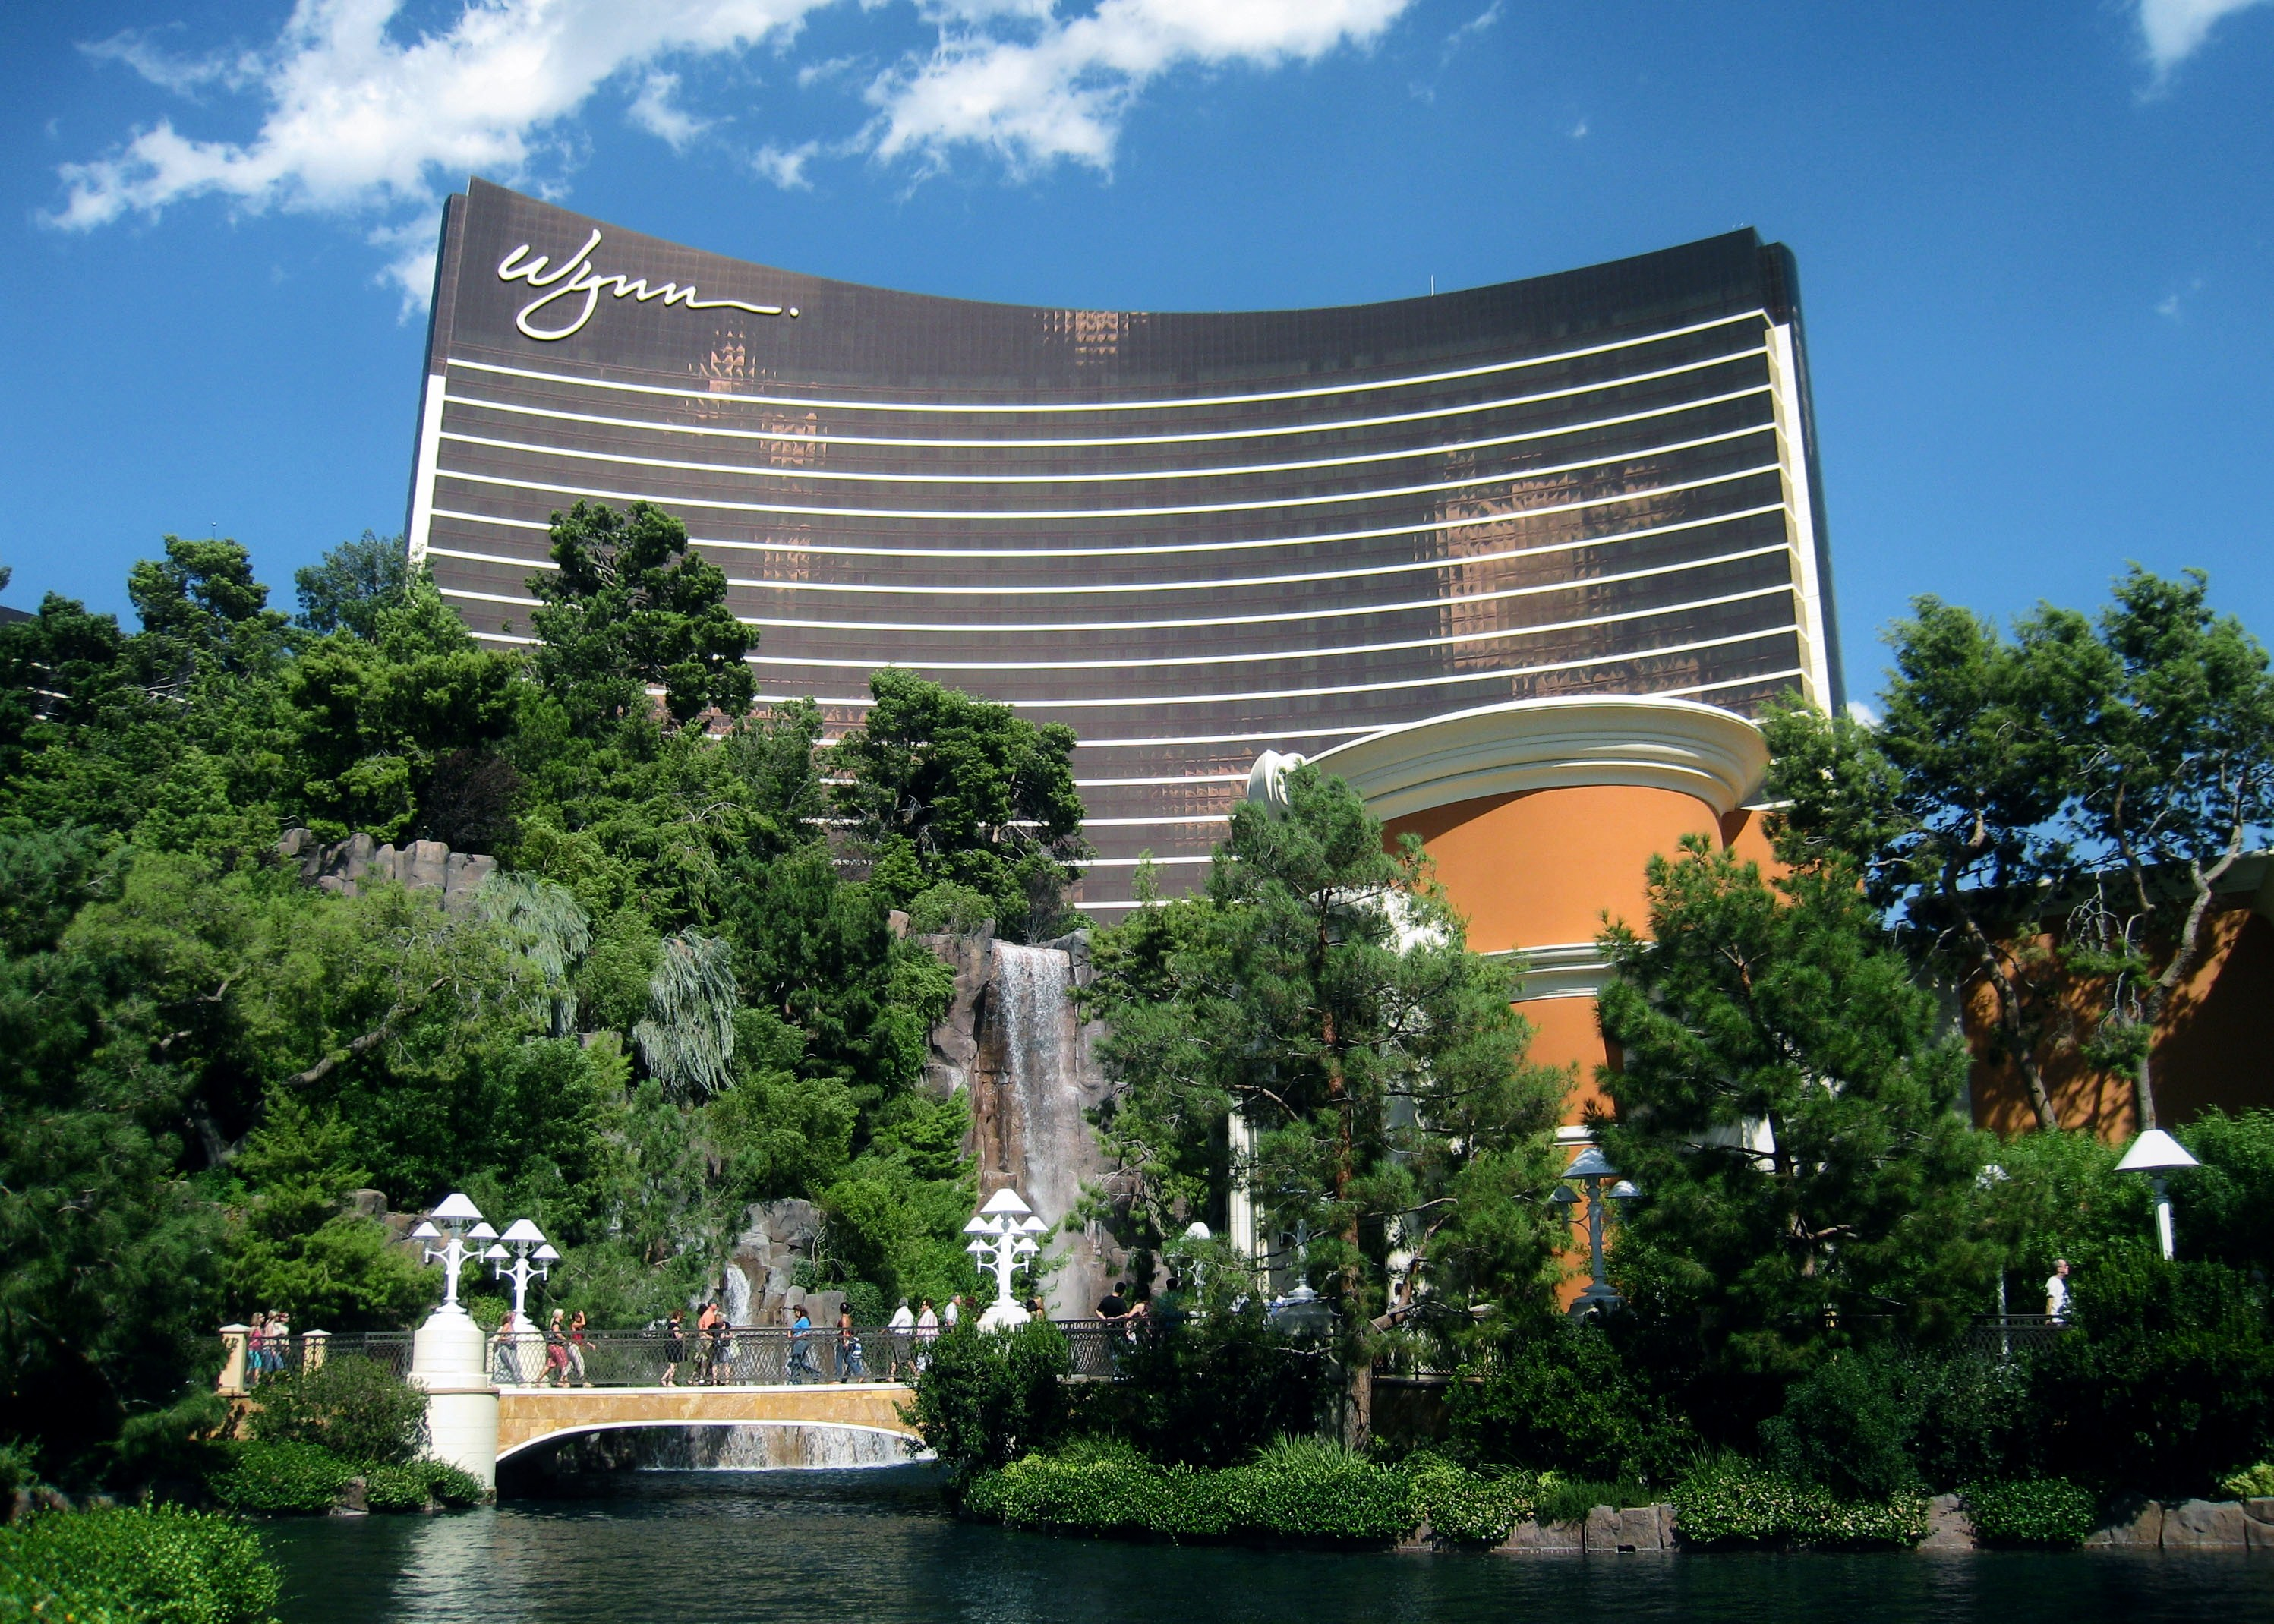 The Wynn now has FREE parking if you spend $50 says BETH Ellyn Rosenthal, eXp Realty